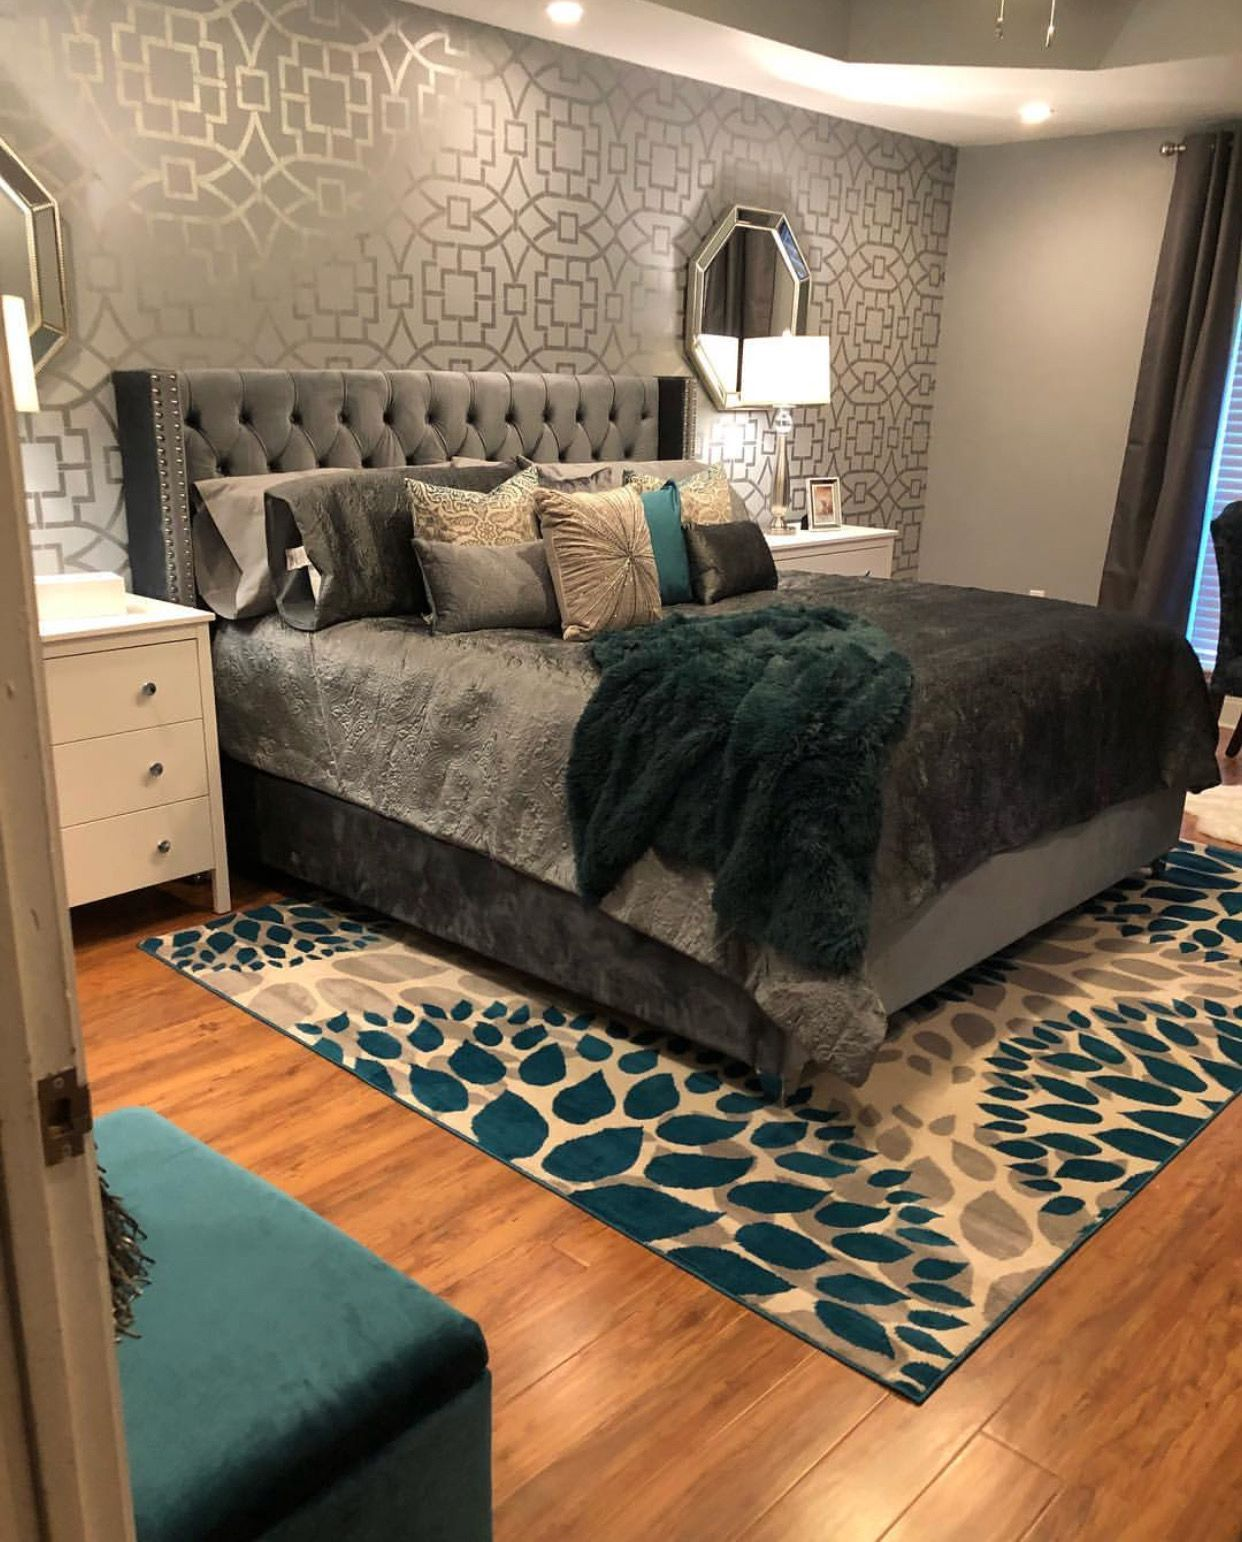 Accent Wall Paint Ideas For Your Best Home Decor Diywall Ideas Wallpaint Wallaccent Wallrus Master Bedrooms Decor Remodel Bedroom Bedroom Makeover